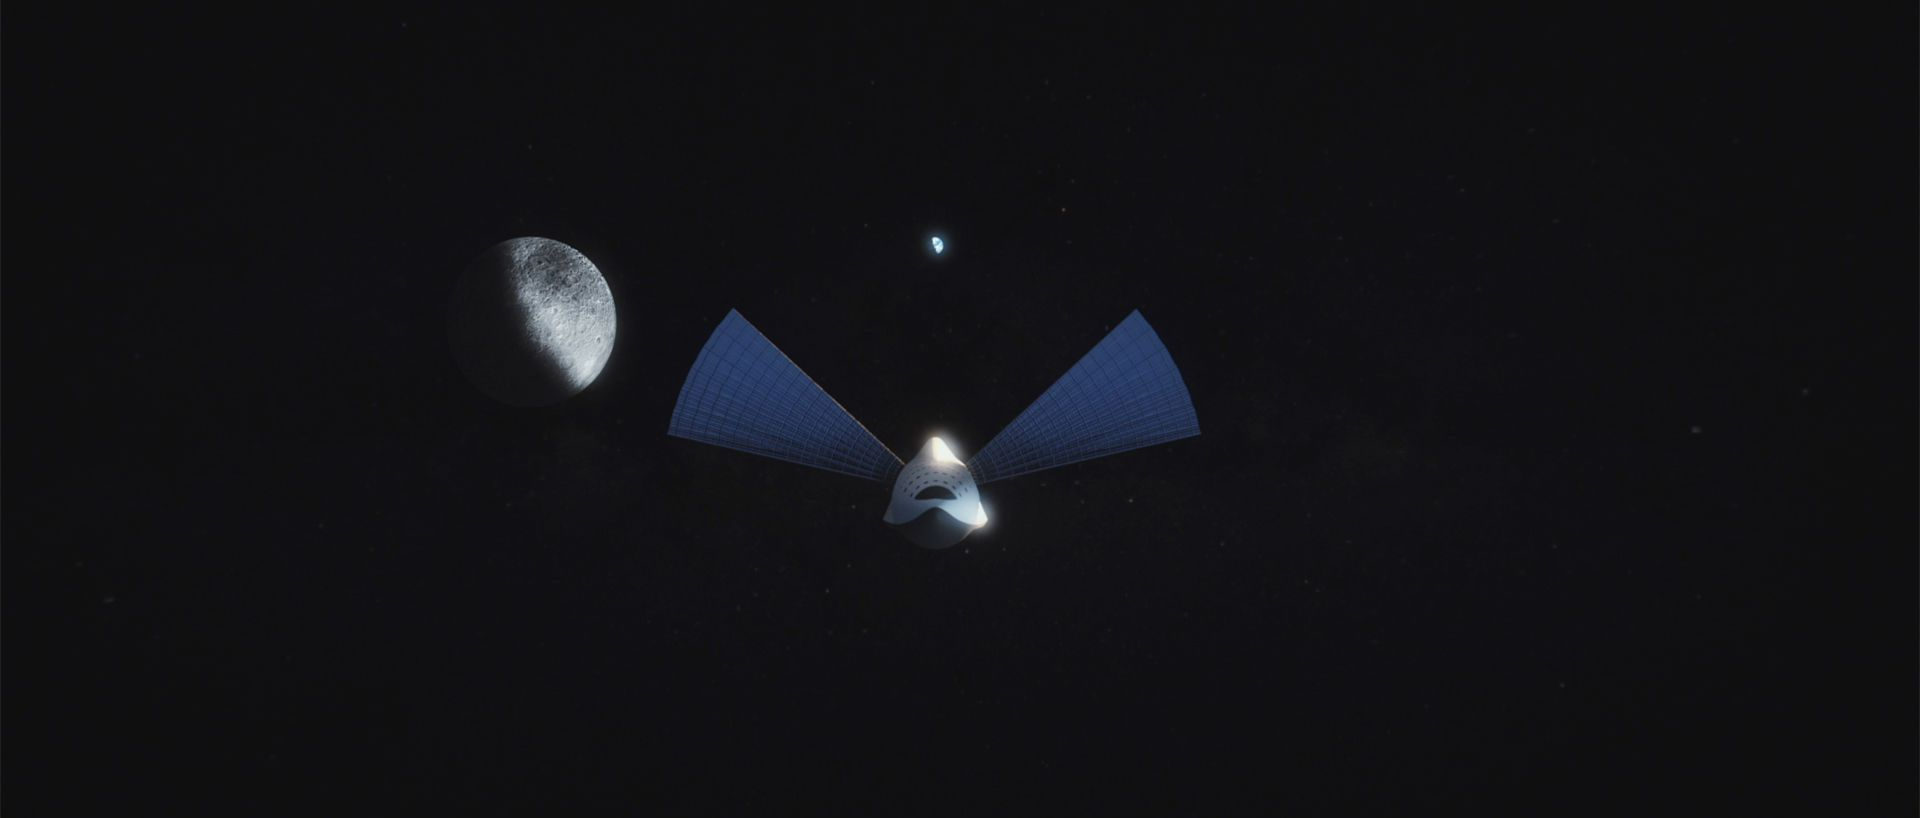 Elon musk plans to name 1st mars colony ship heart of